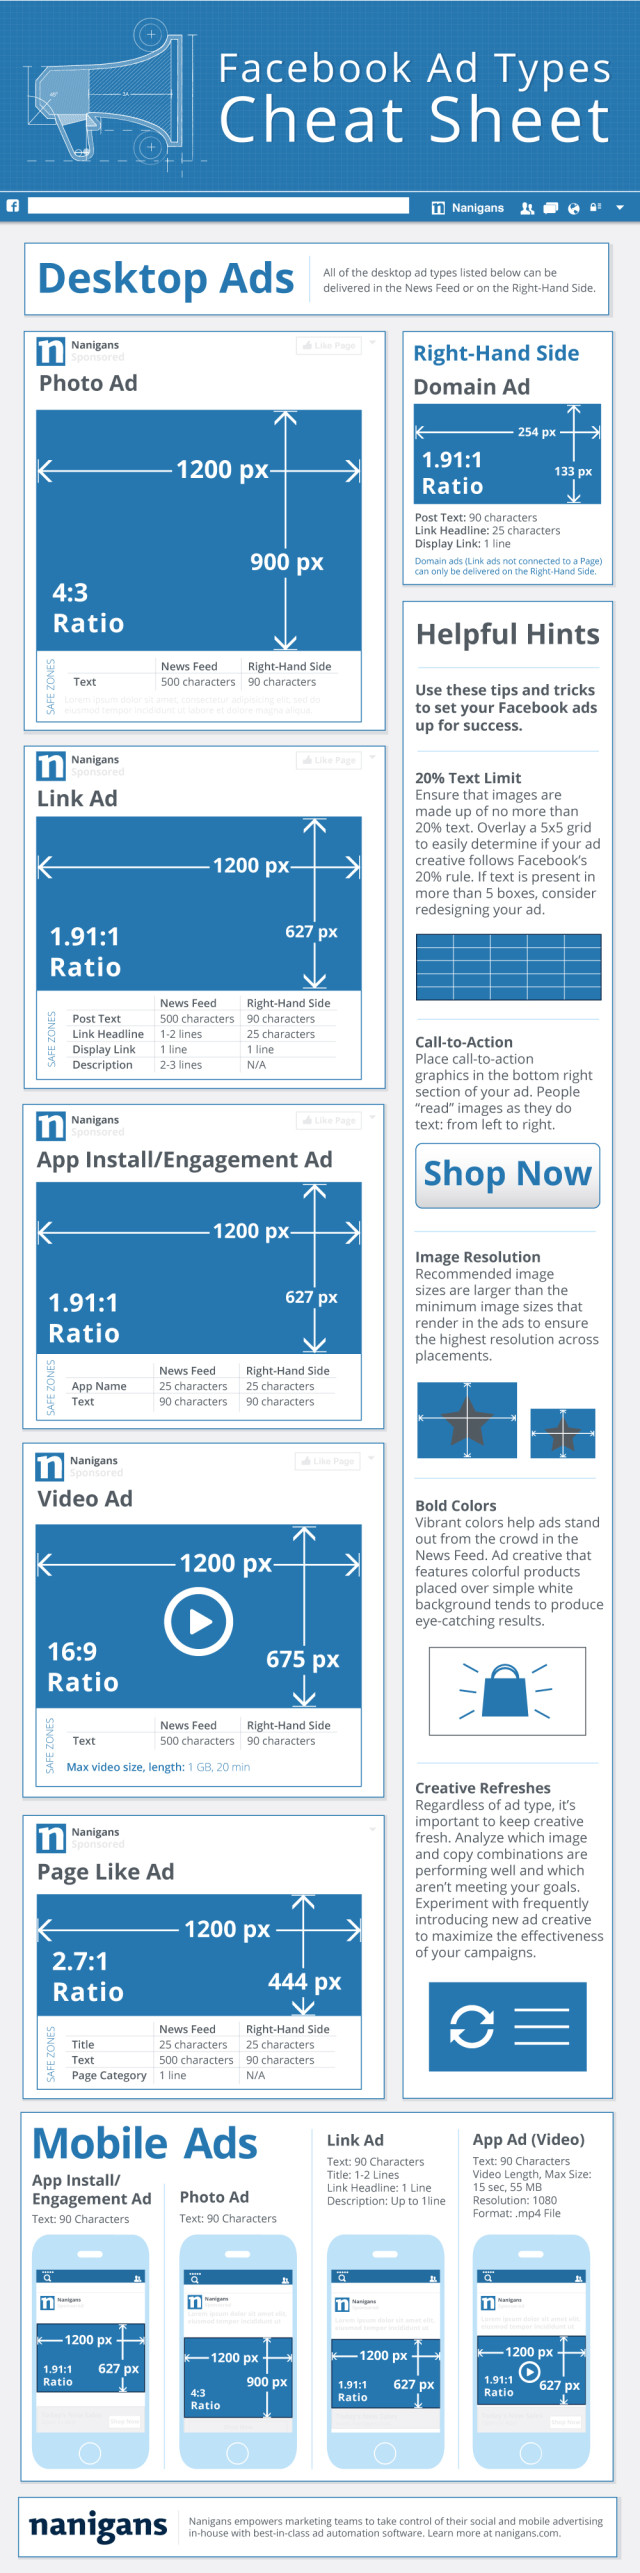 Nanigans-Facebook-Ad-Types-Infographic